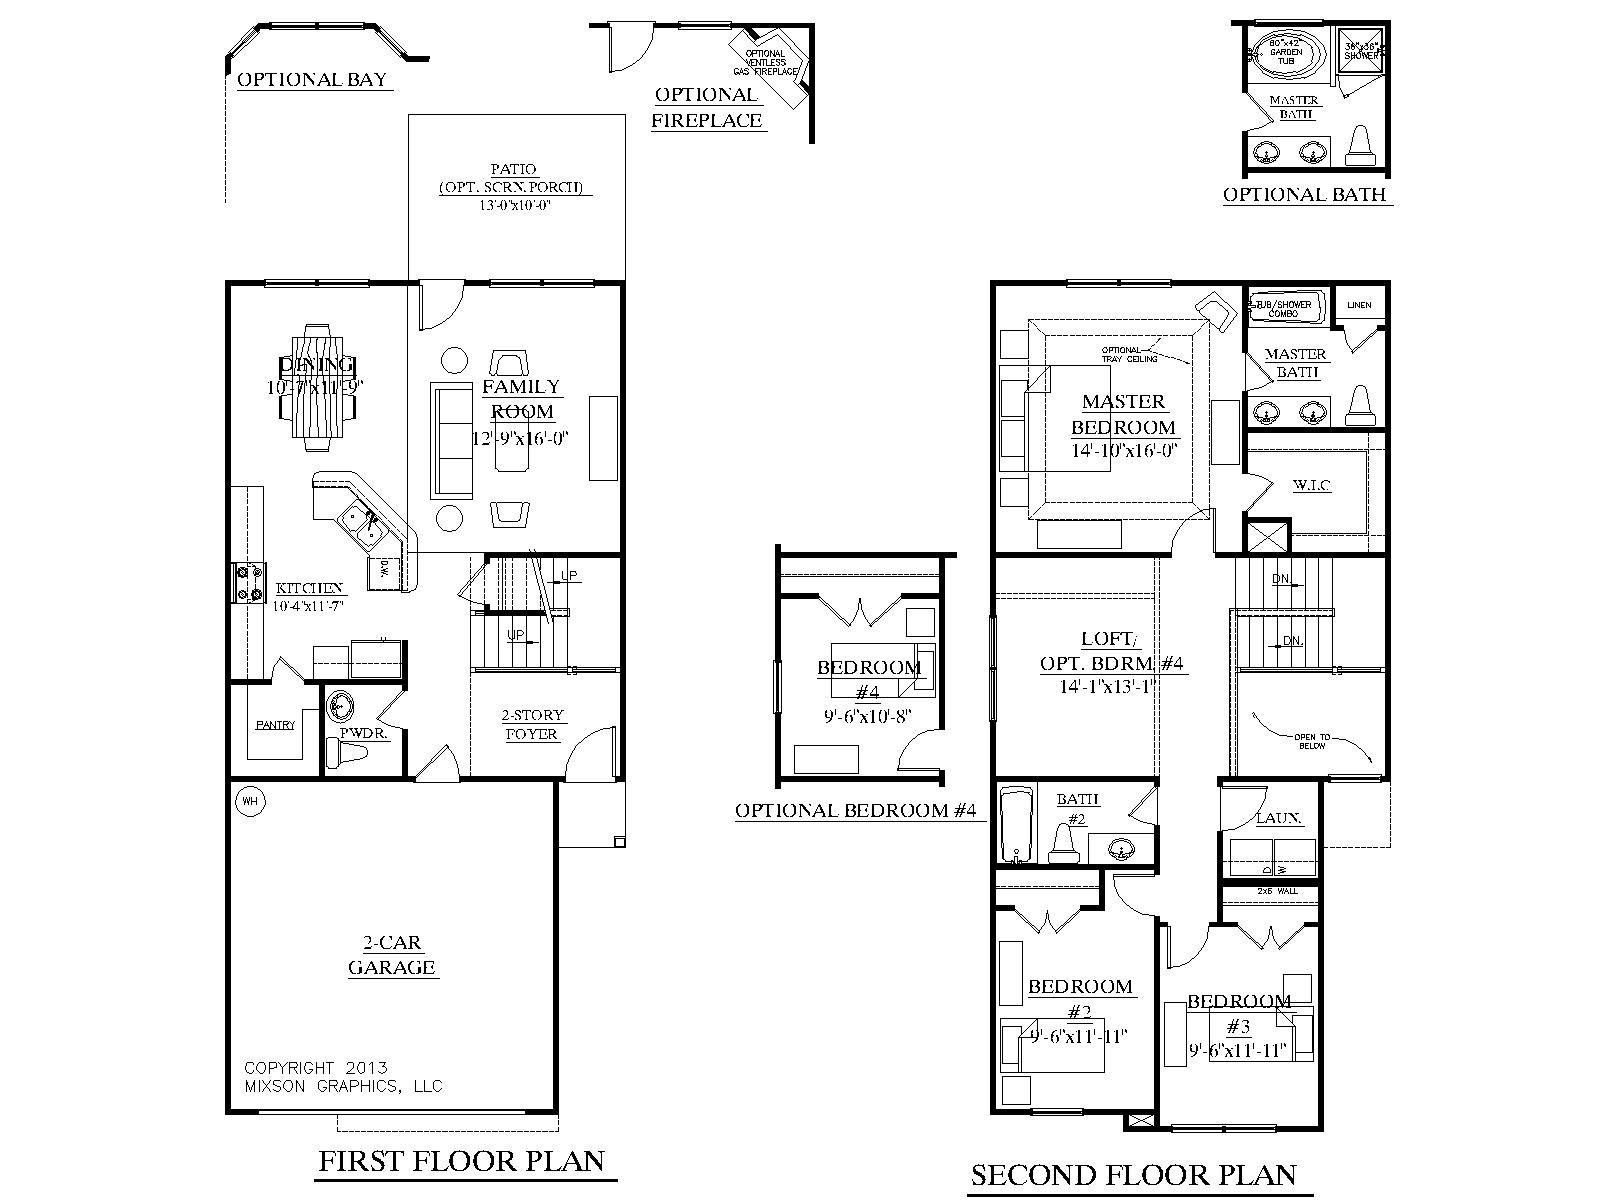 house plans living upstairs bedroom and living room image